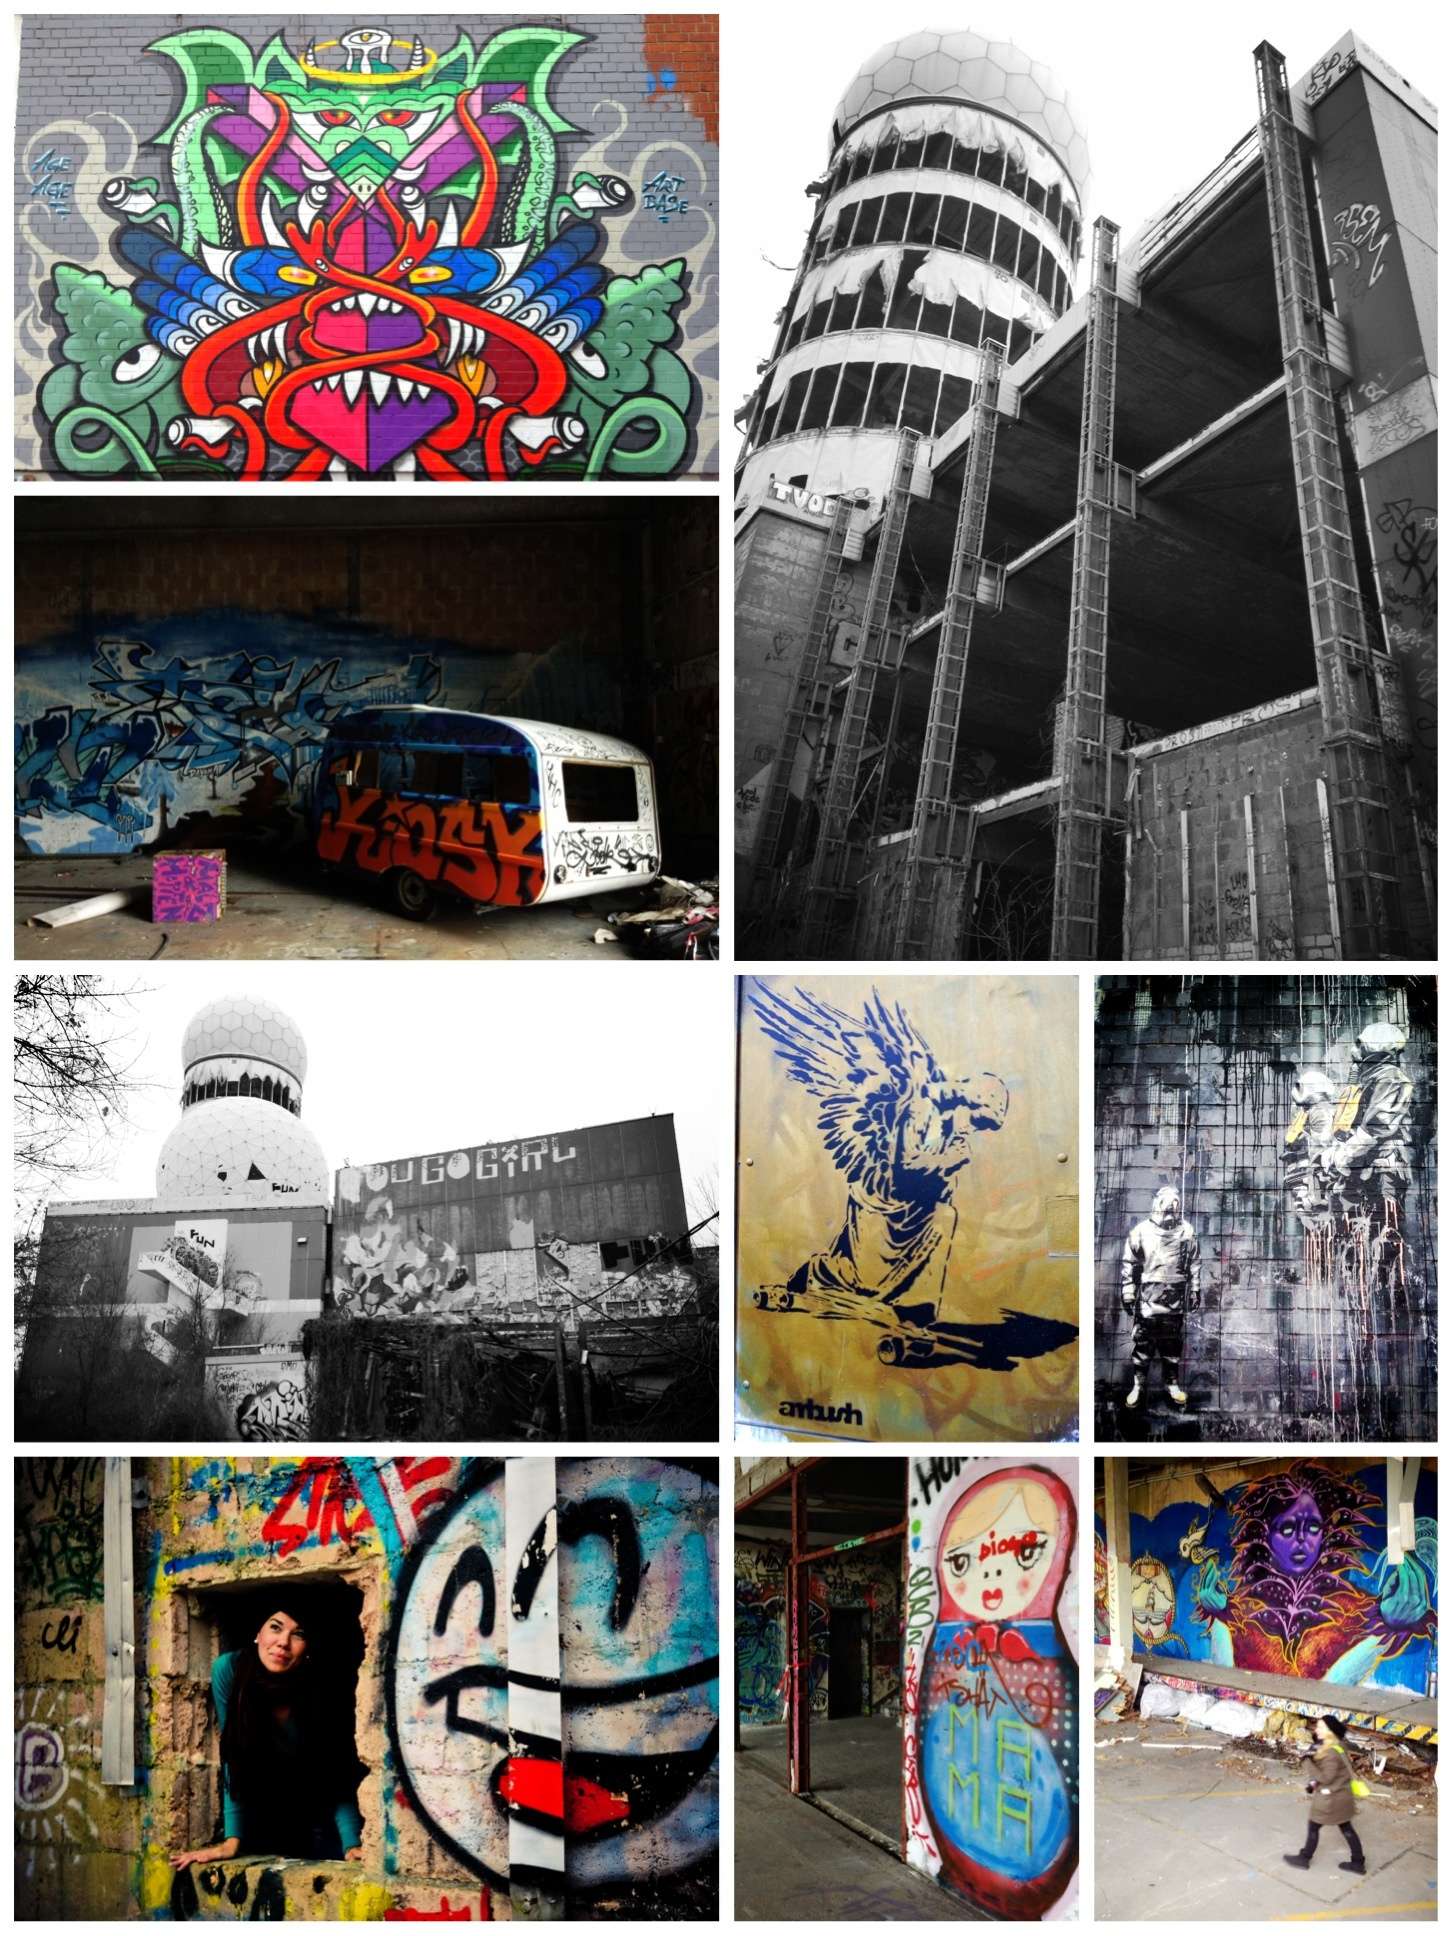 The Coolest Place I went While in Berlin: Teufelsberg - Kirsten Alana